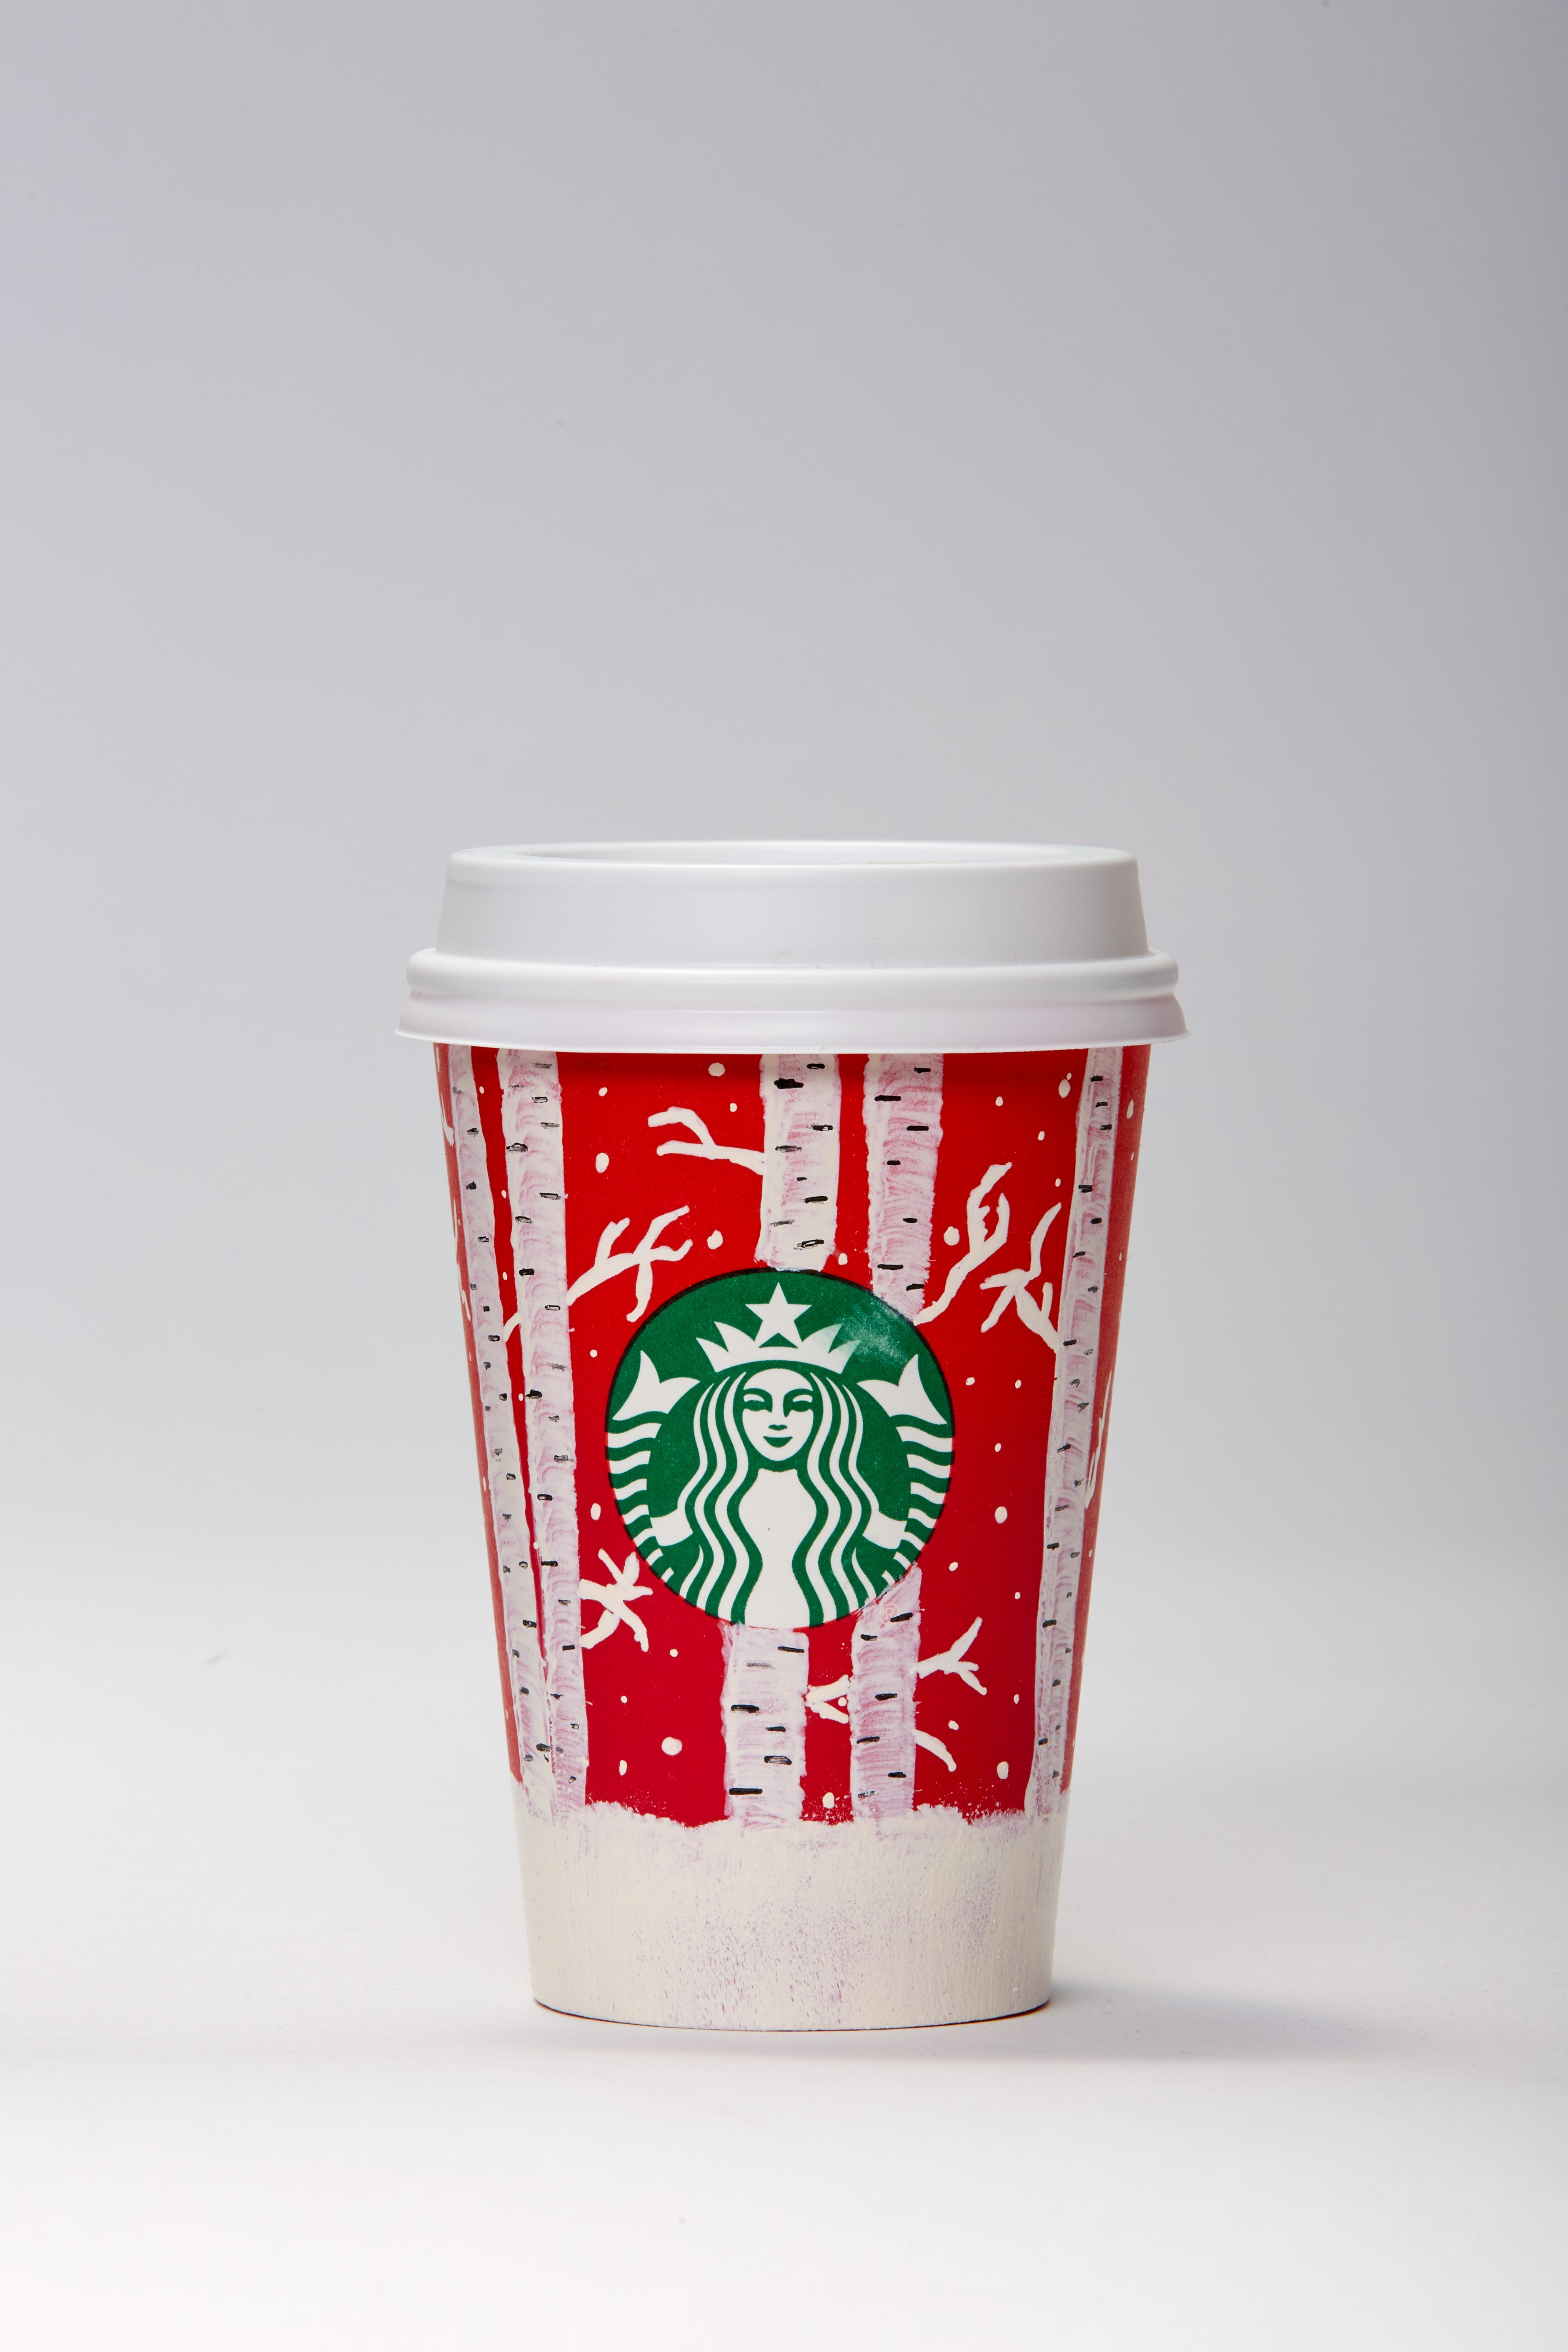 New Starbucks Winter Red Cups - Every Cup Design